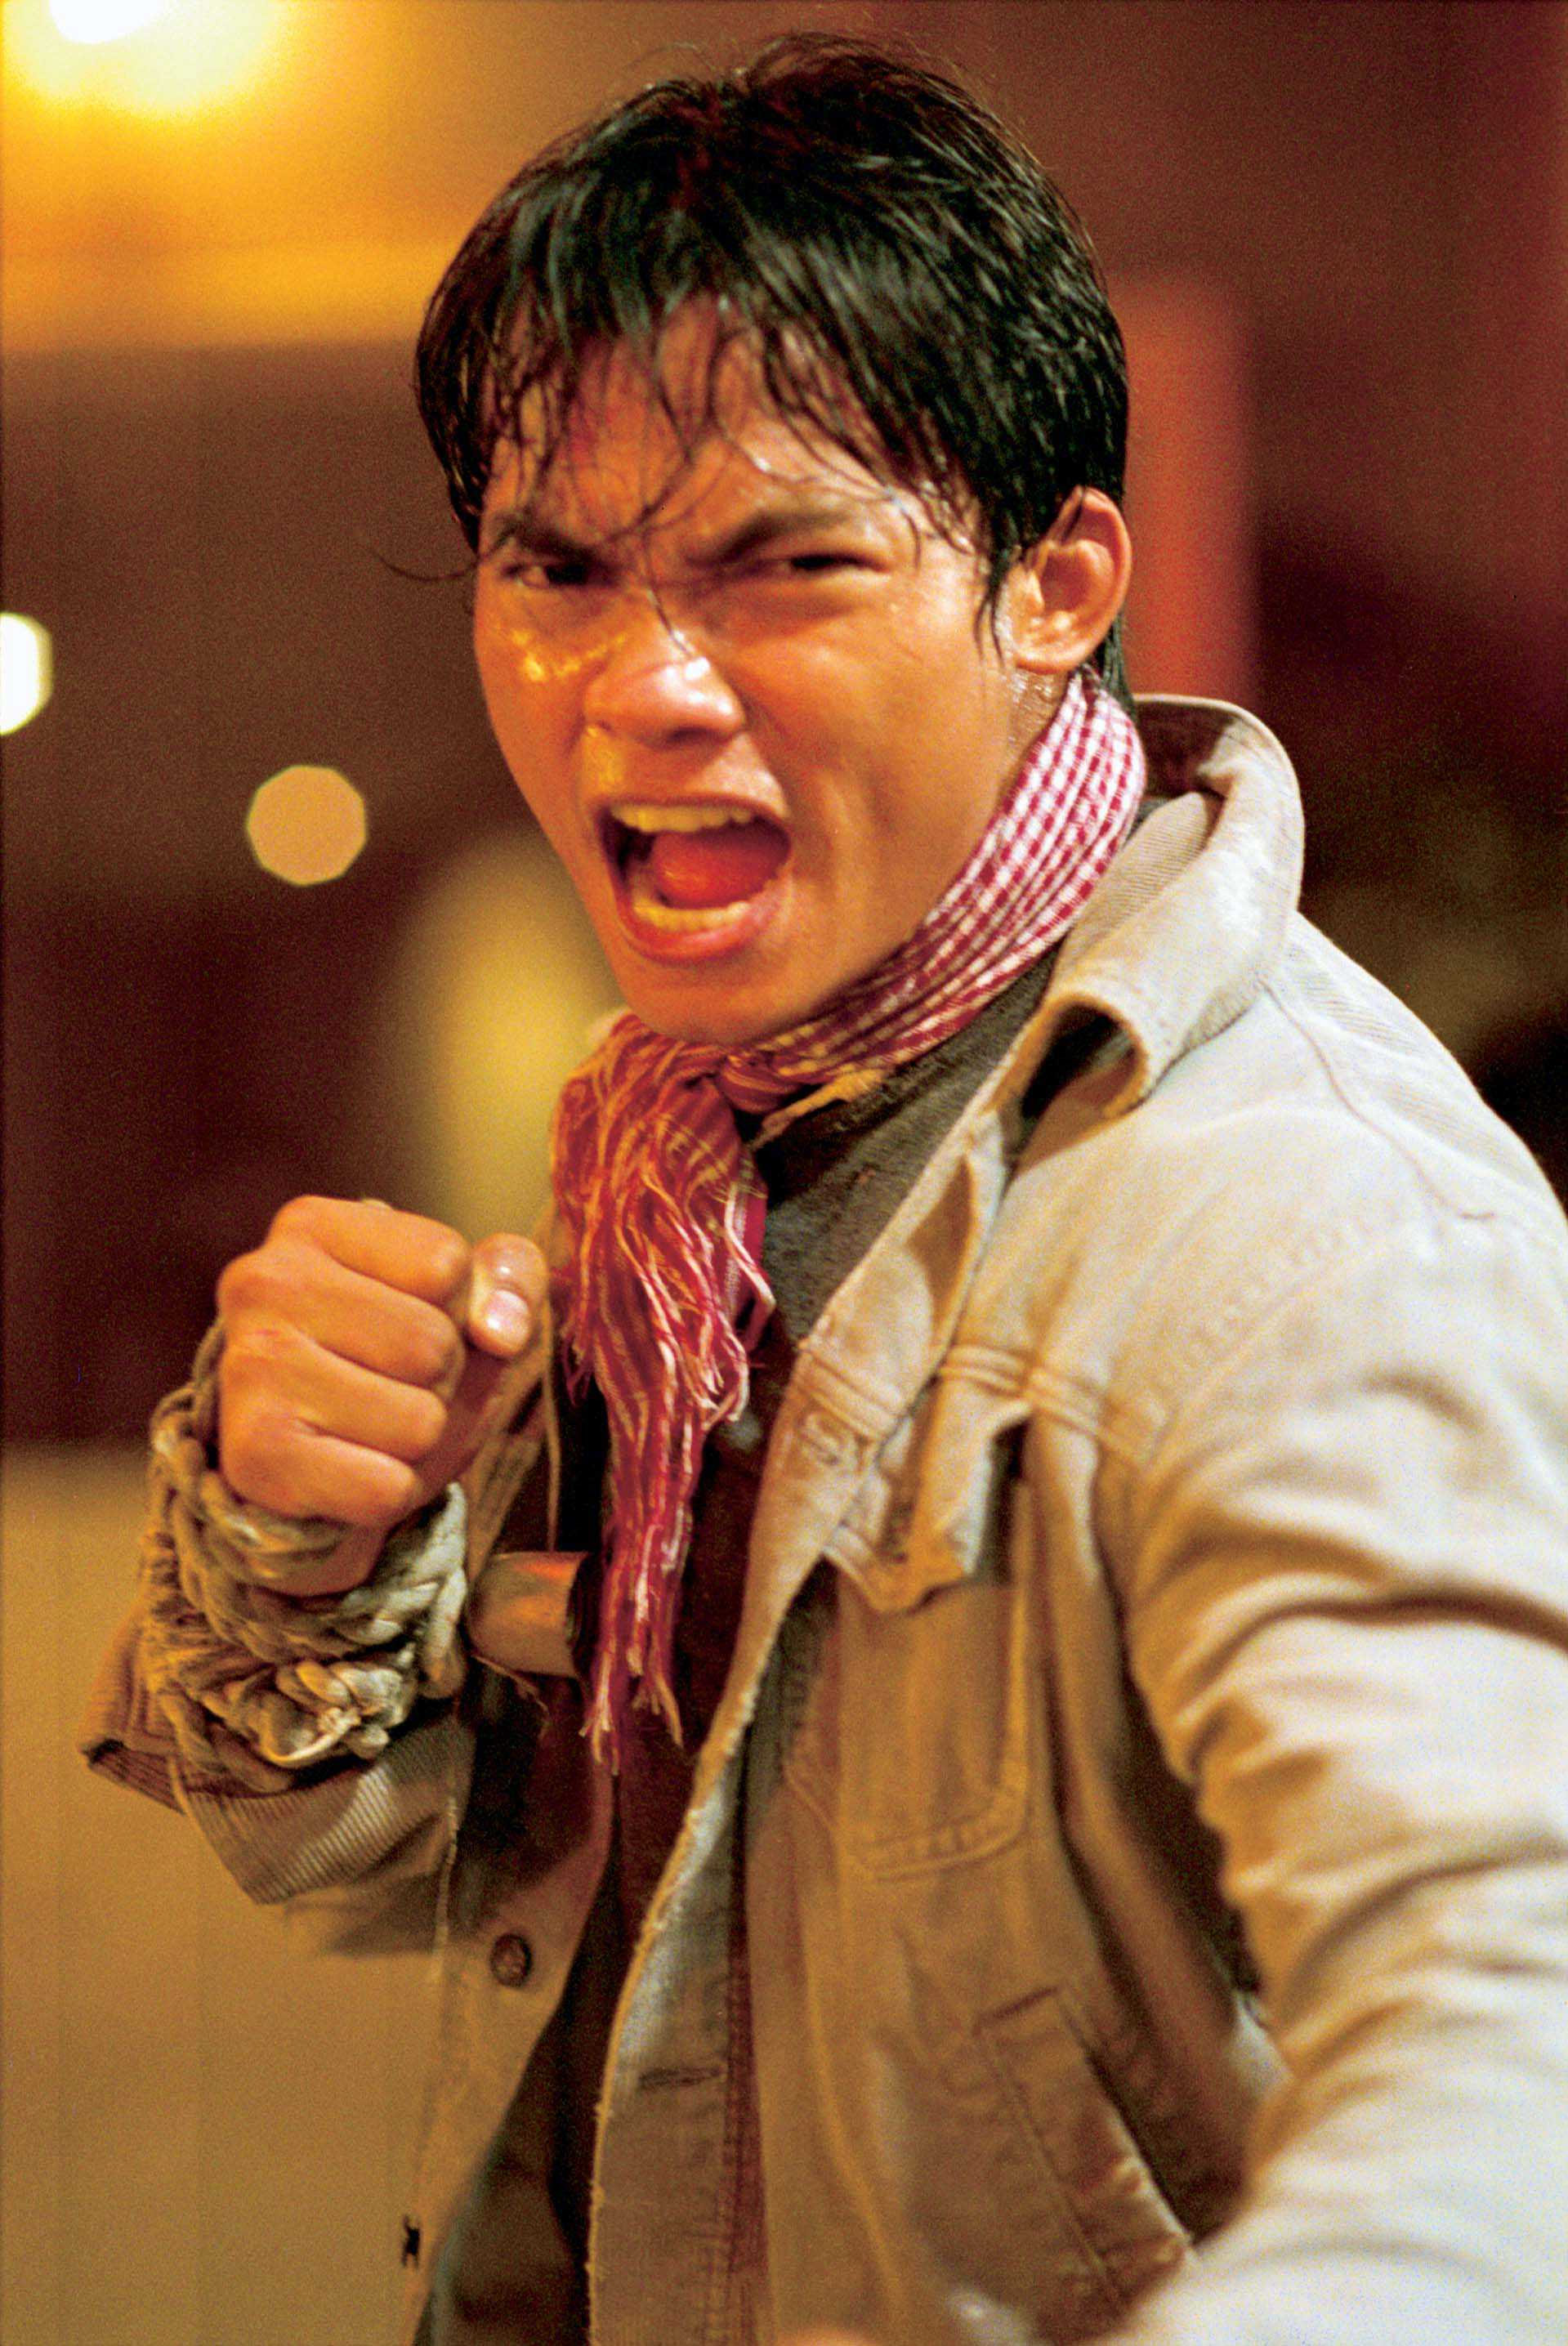 Tony Jaa For mobile